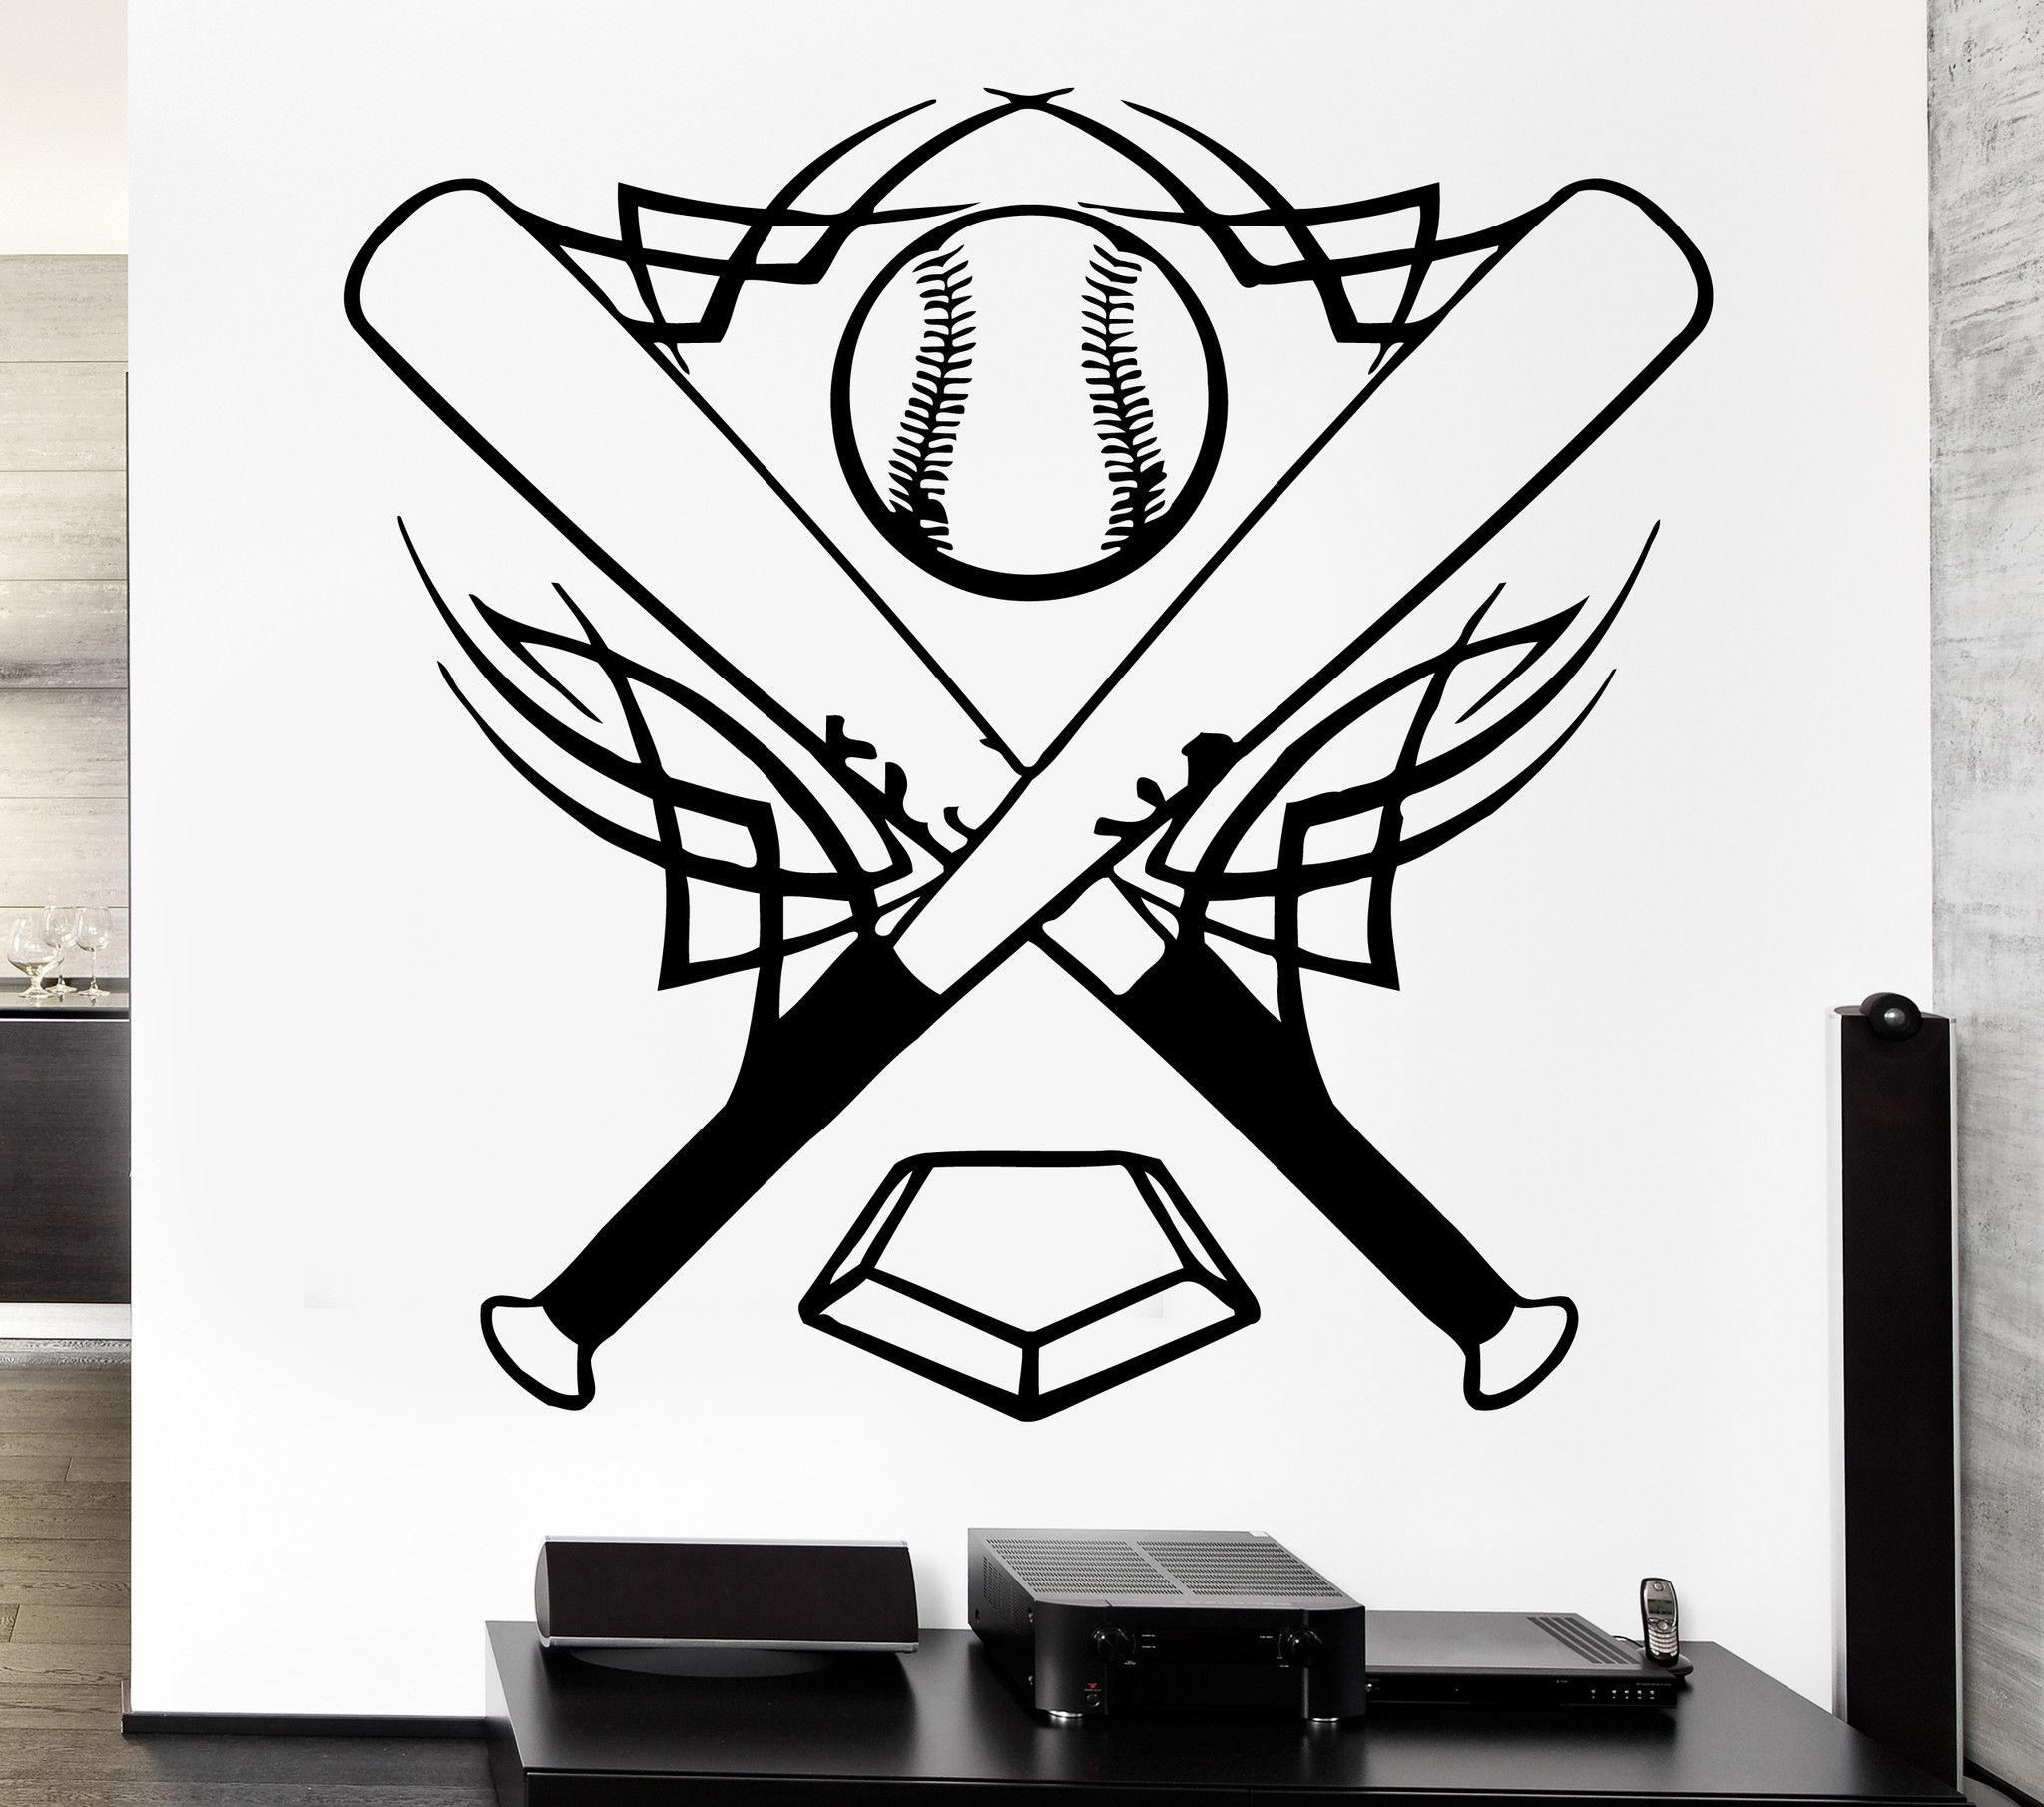 Vinyl Decal Baseball Wall Stickers Bat Sports Ball Great Decor